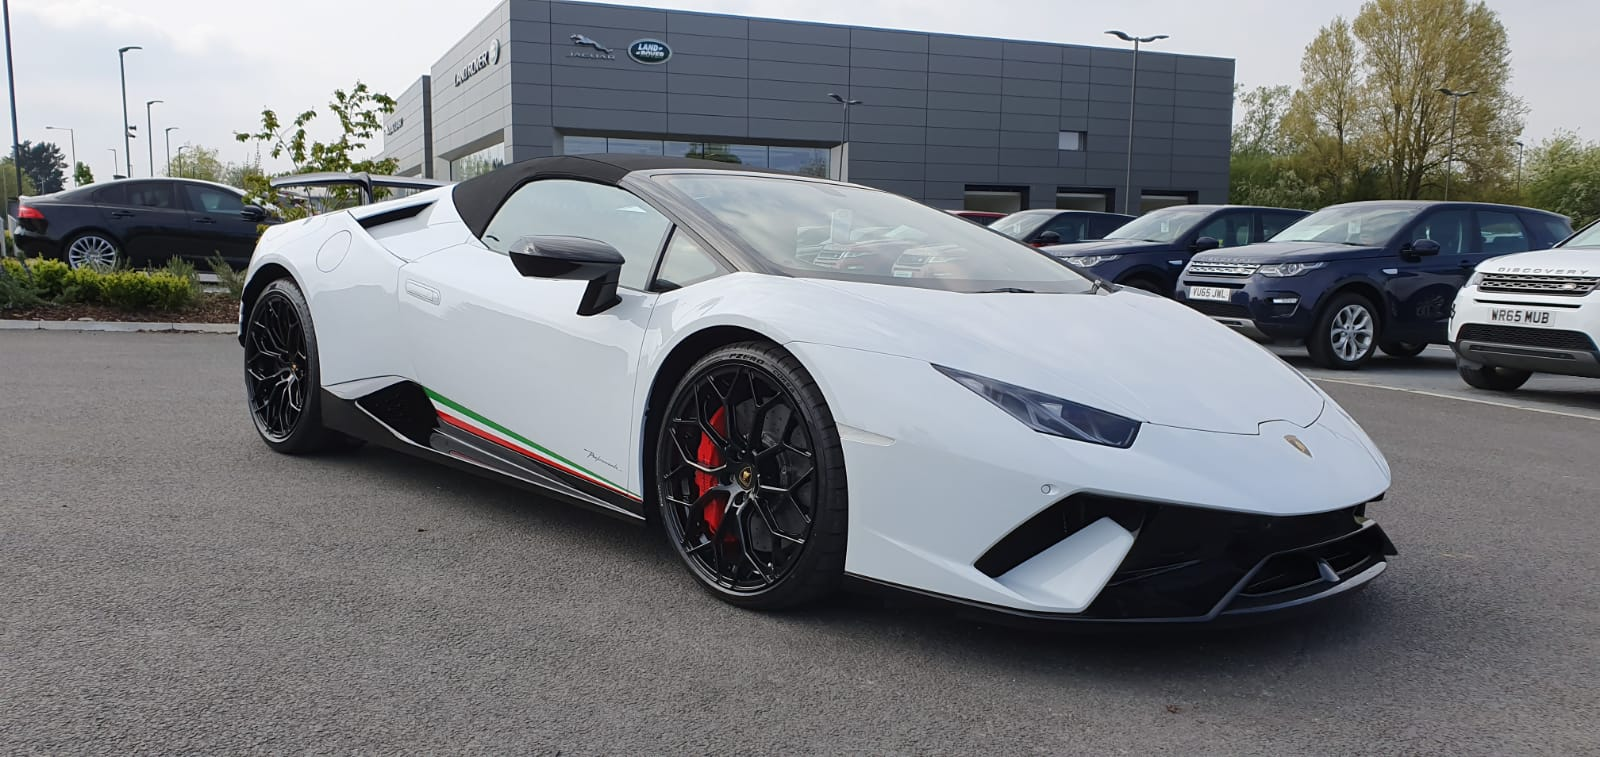 Lamborghini Huracan Performante Spyder 610-4 S-A  5.2 Automatic 2 door Convertible (2018) image